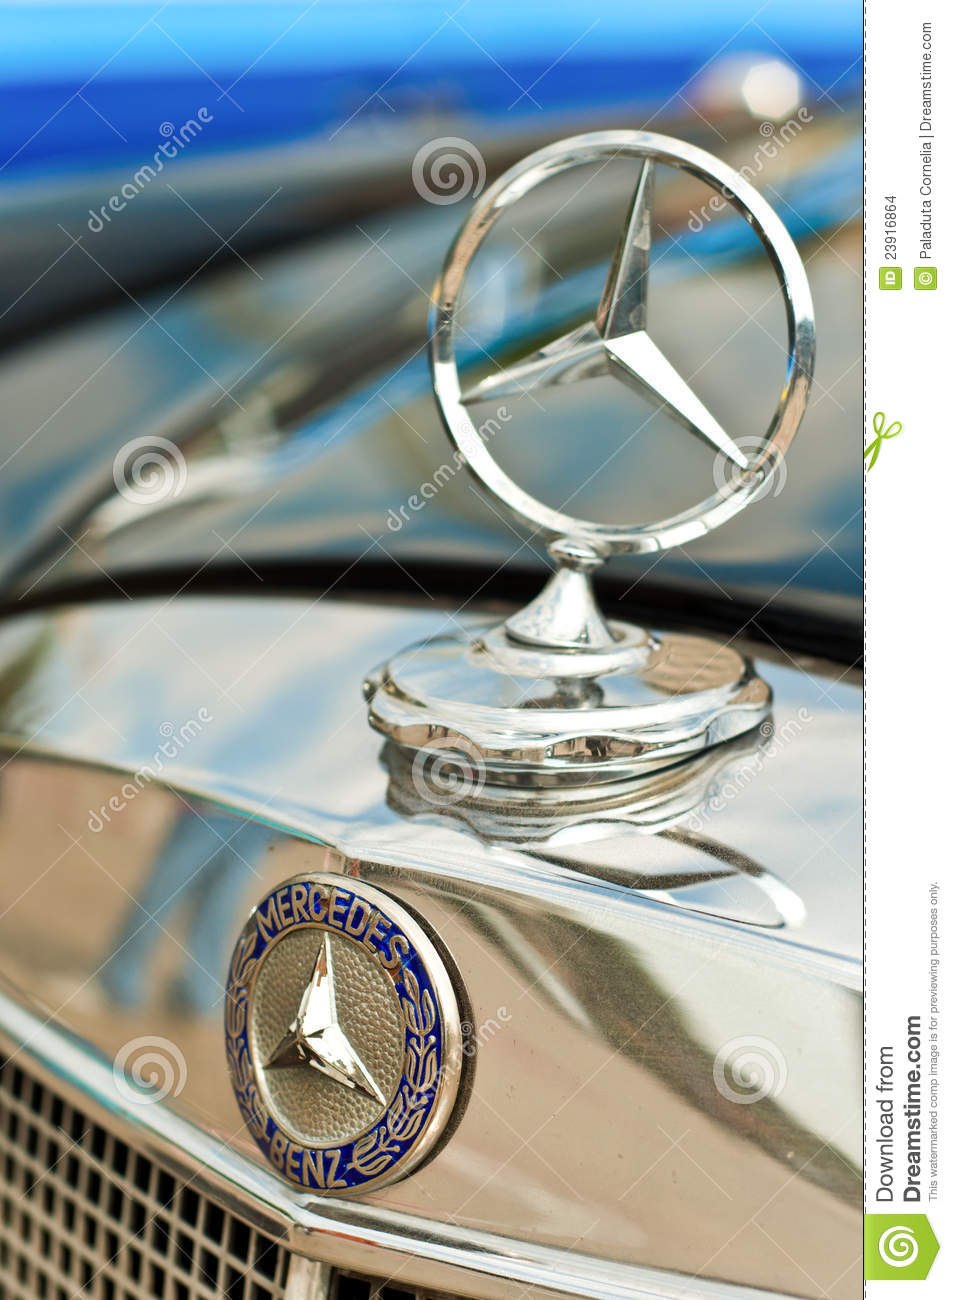 Mercedes Benz Logo Editorial Stock Image Image Of Closeups 23916864